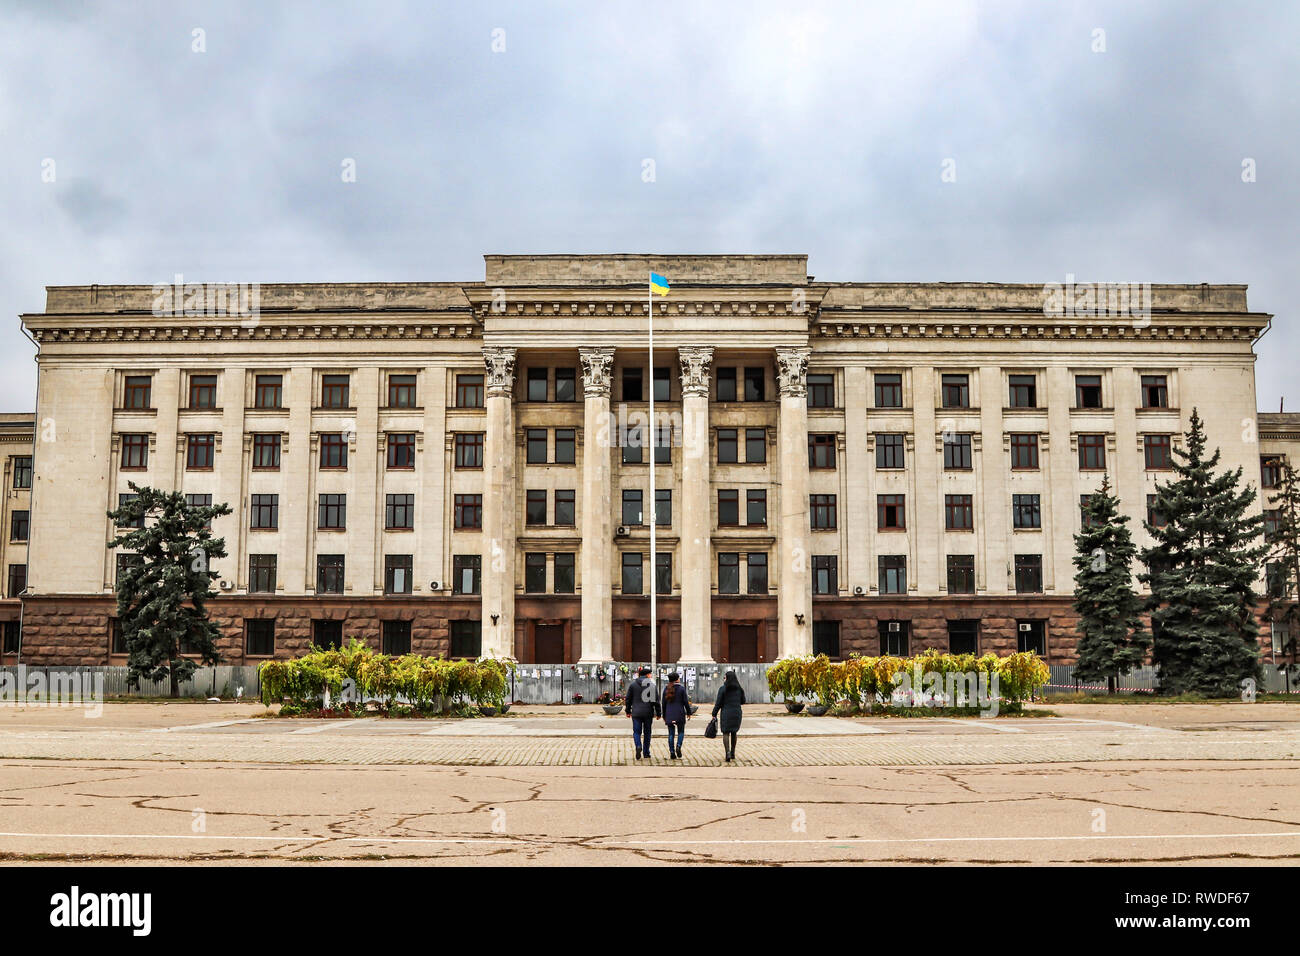 Trade Unions Building in Odessa, a scene of devastation during the 2014 clashes. - Stock Image